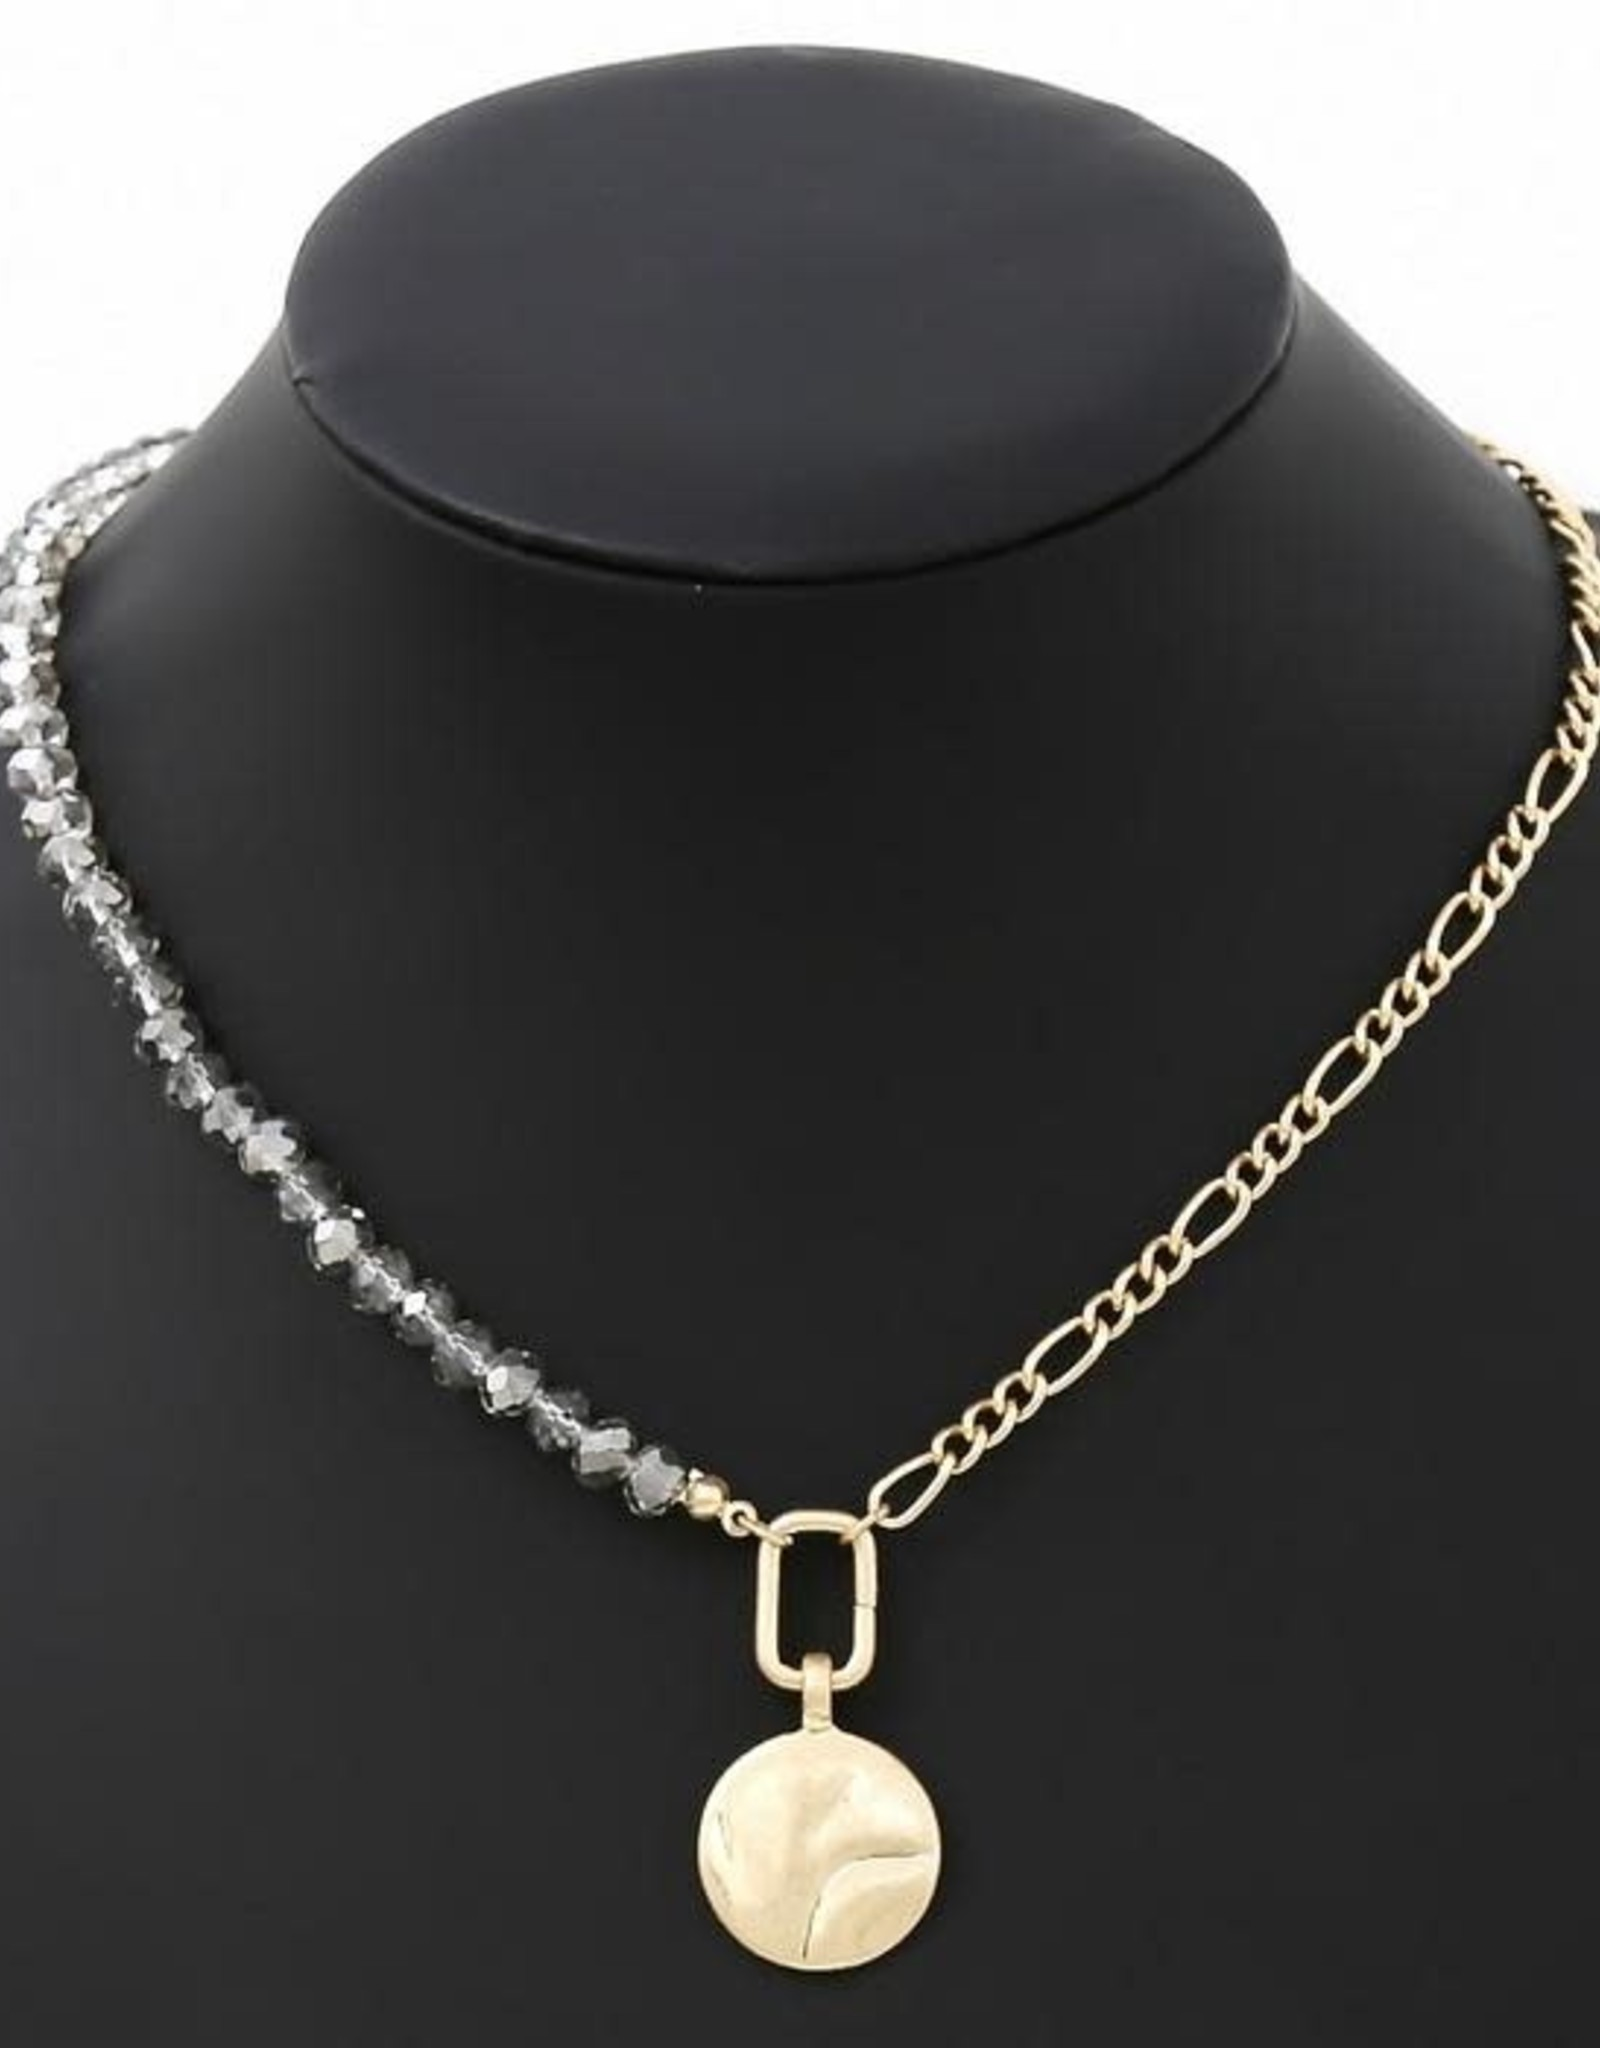 Pearl/Glass Beaded Figaro Link Chain Hammered Metal Coin Pendant Necklace